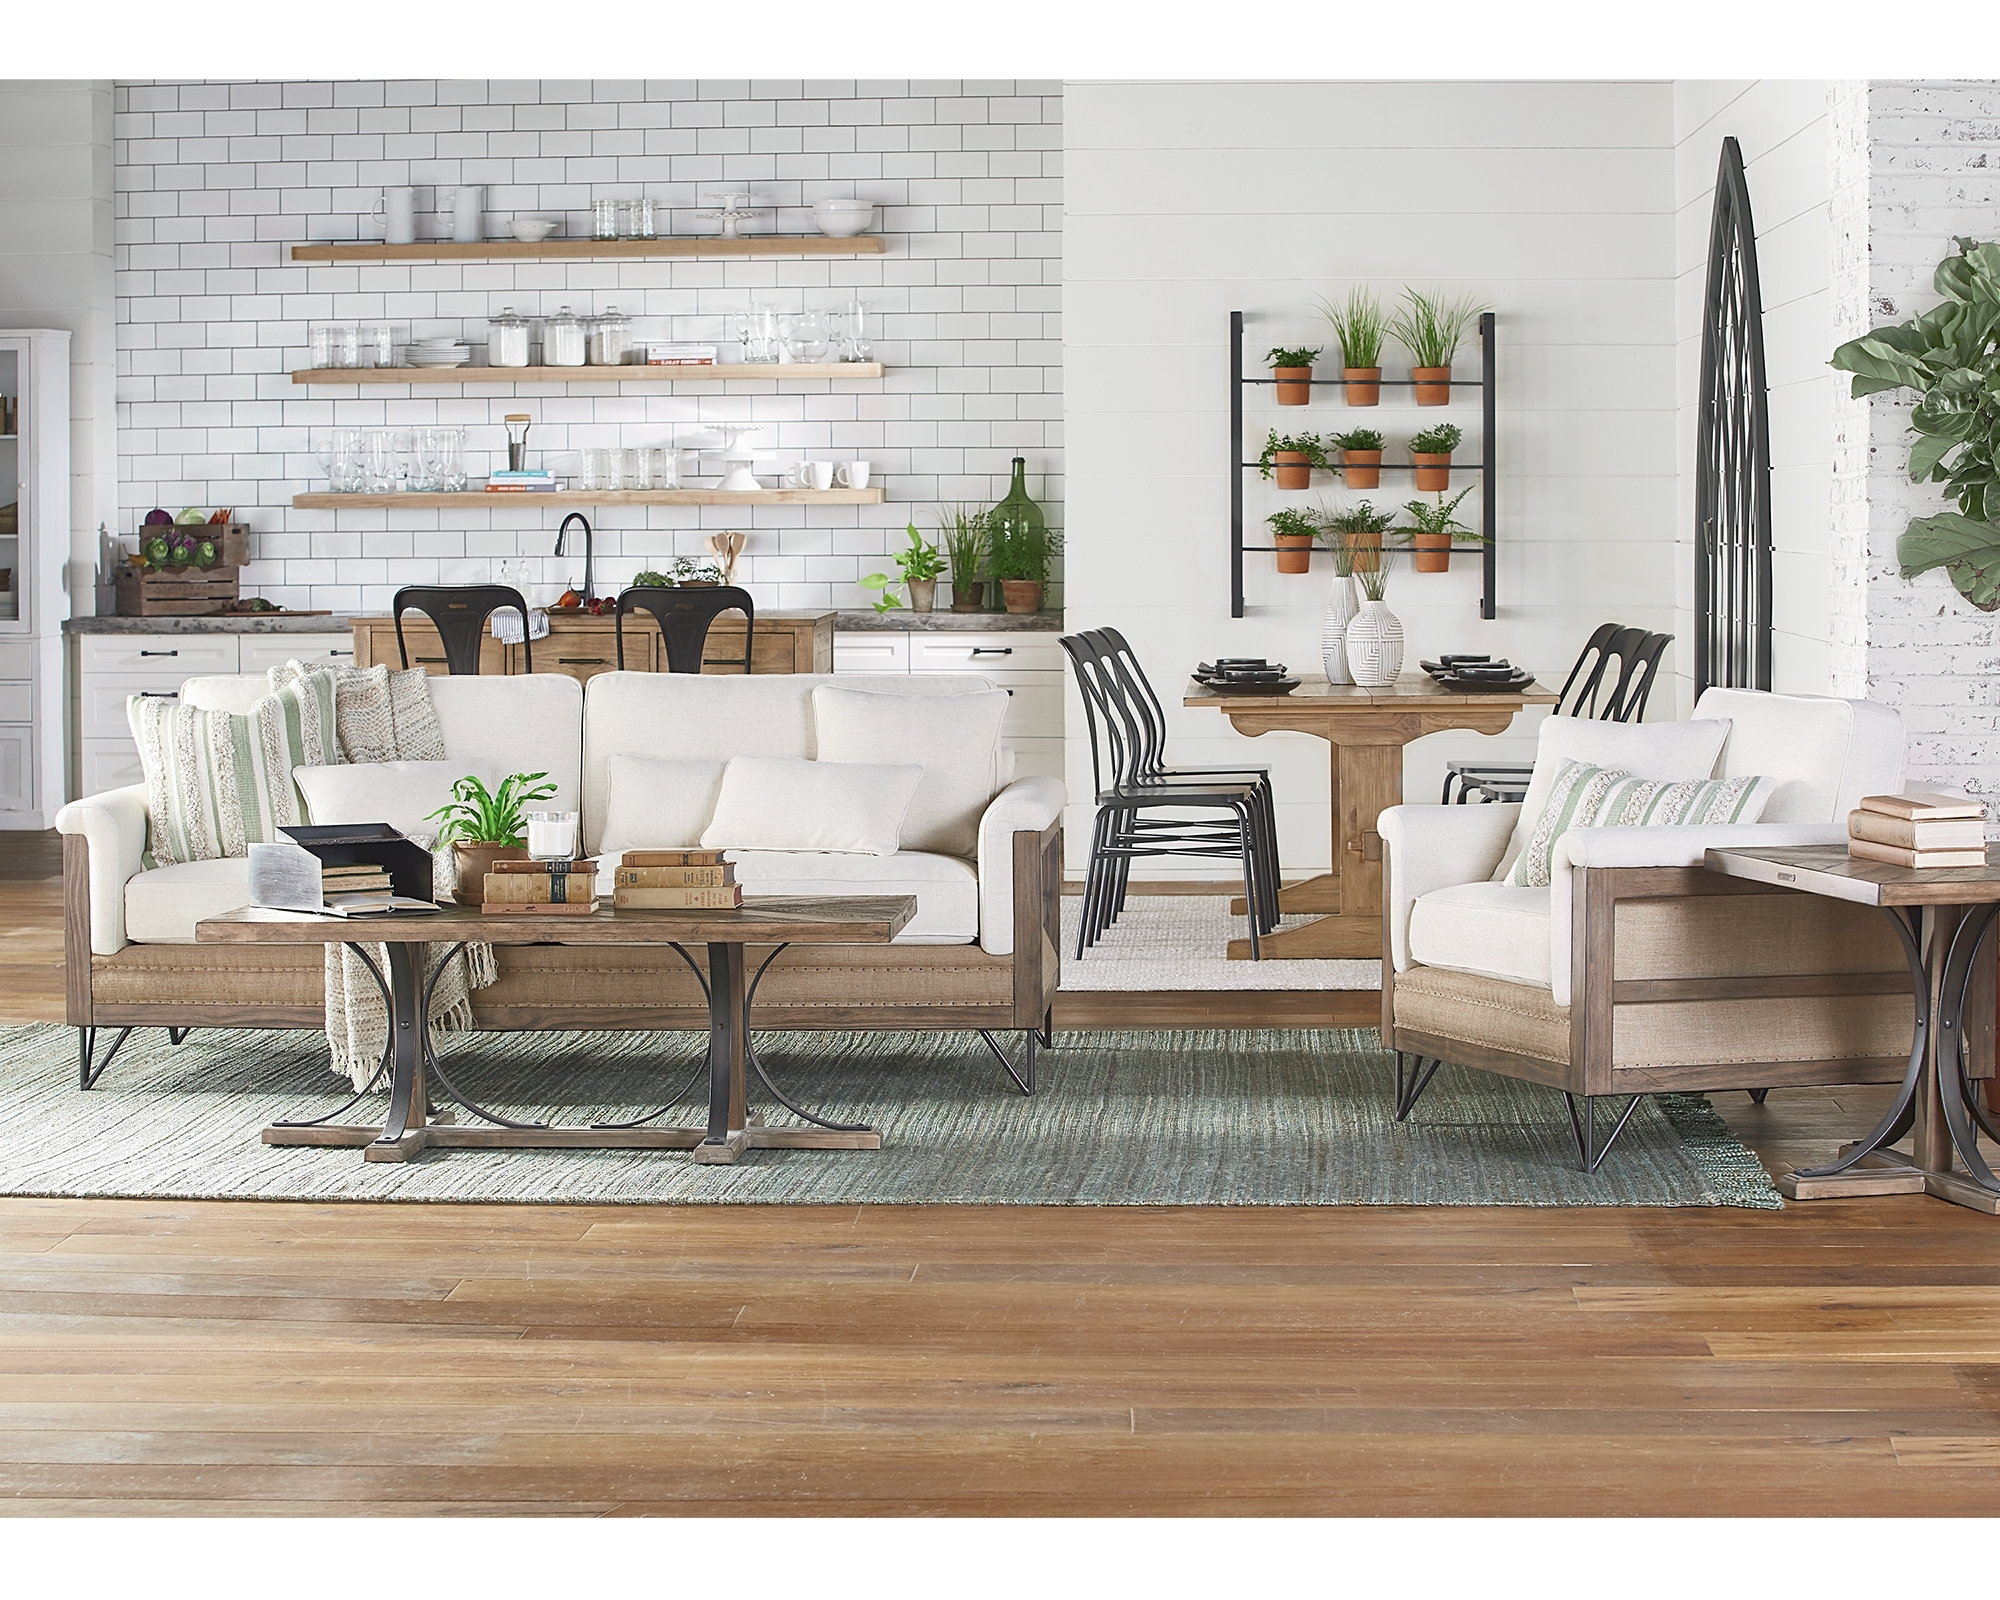 Widely Used Magnolia Home Shop Floor Dining Tables With Iron Trestle In Iron Trestle Coffee Table Magnolia Home (View 24 of 25)